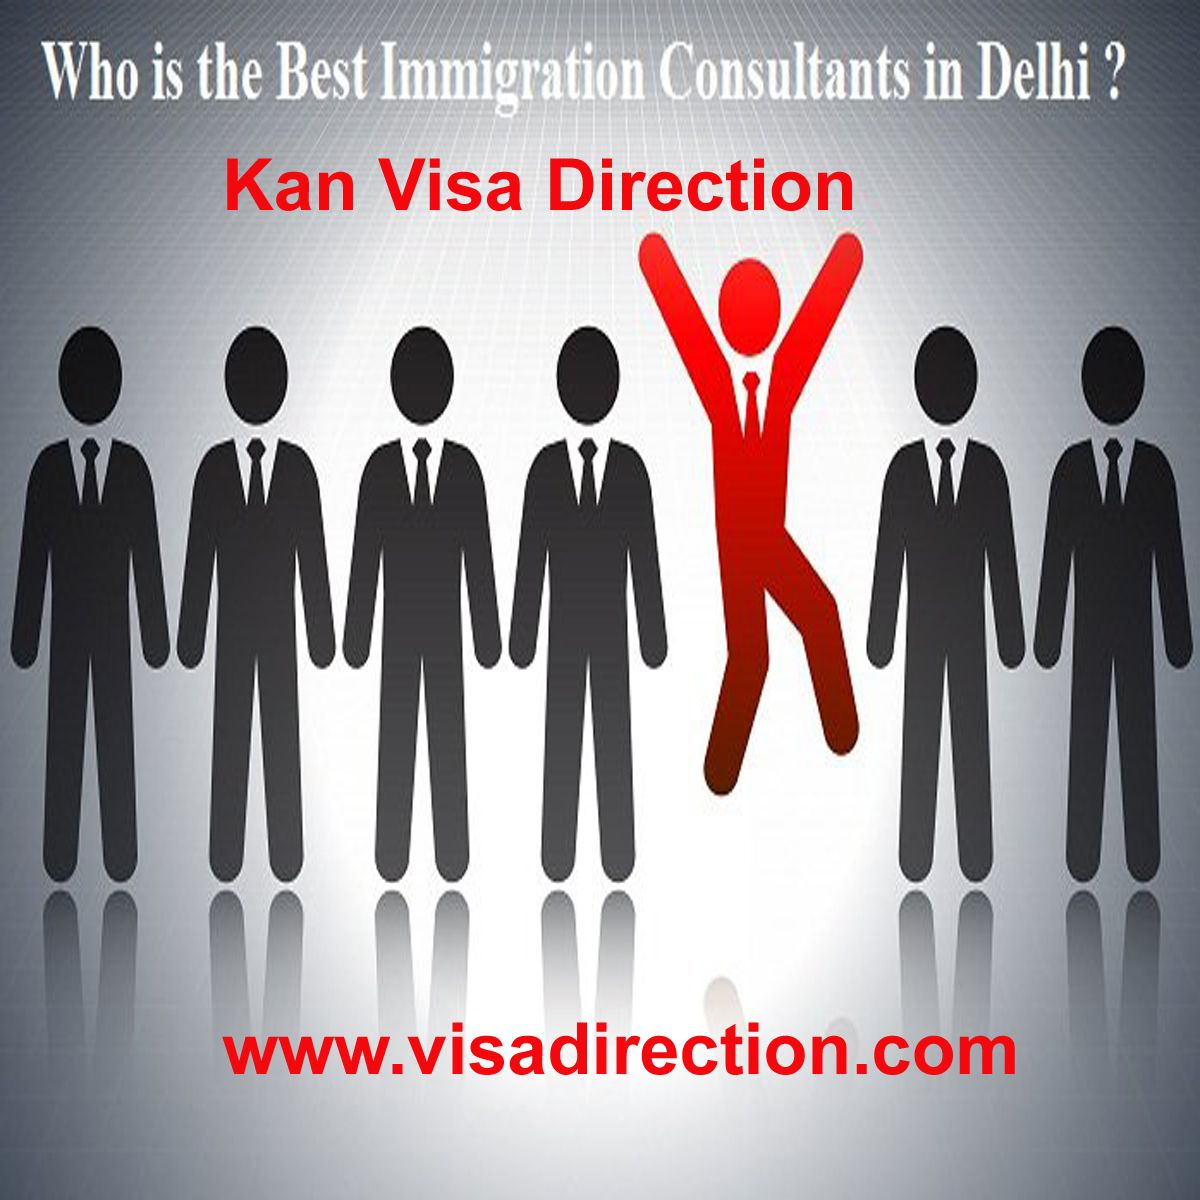 Kan Visa Direction is One of the best Immigration